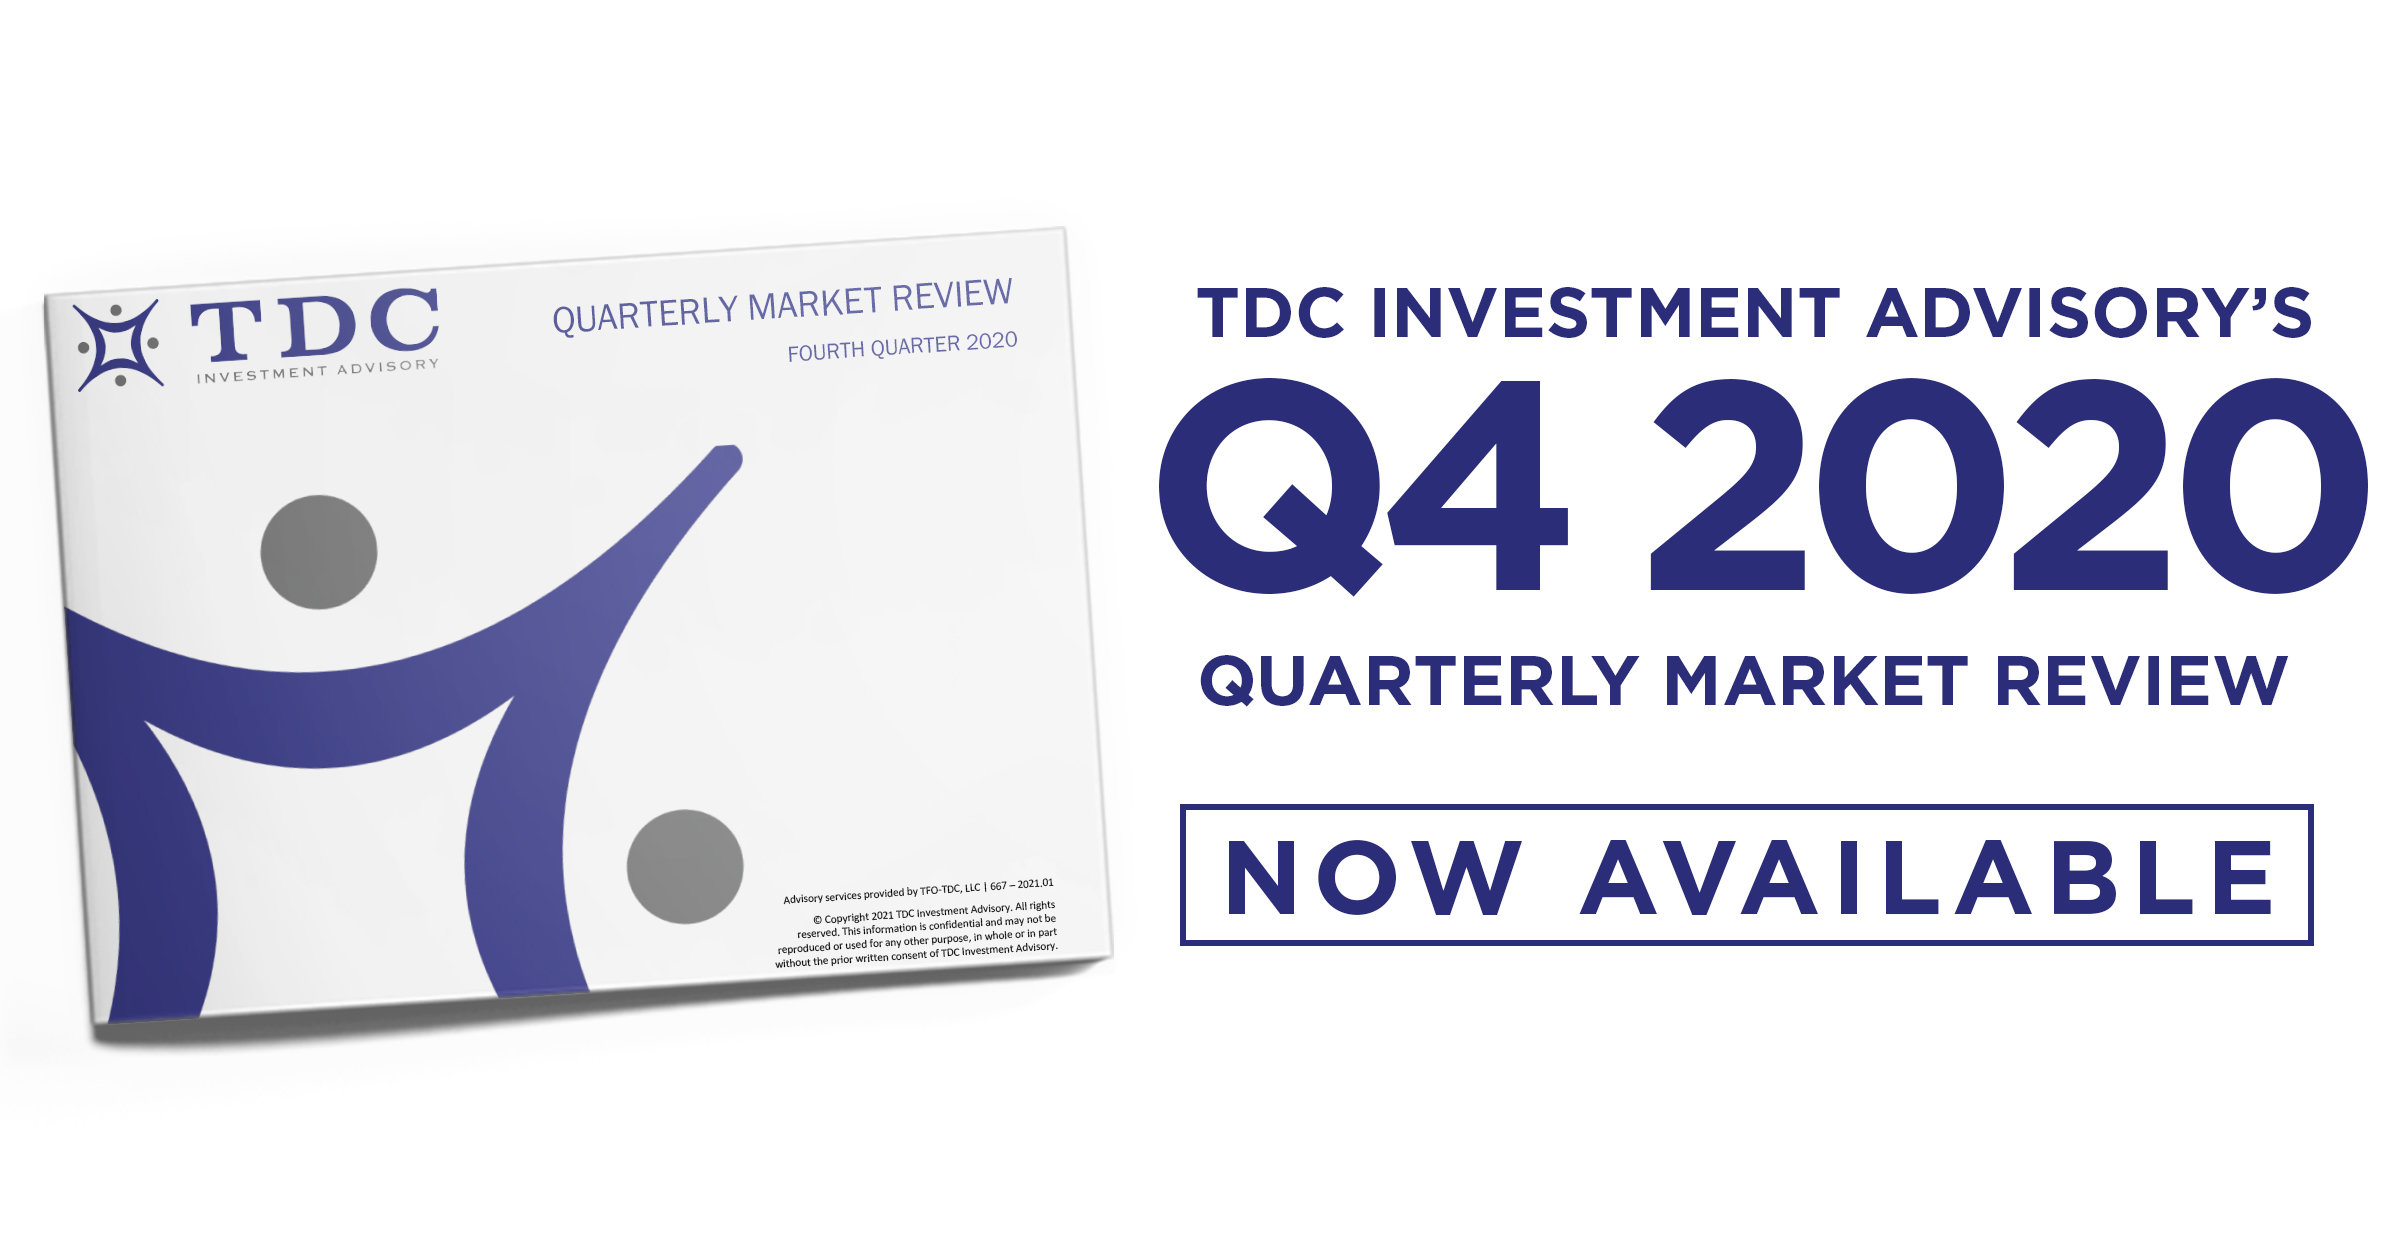 TDC's Quarterly Market Review for Q4 2020 is Now Available